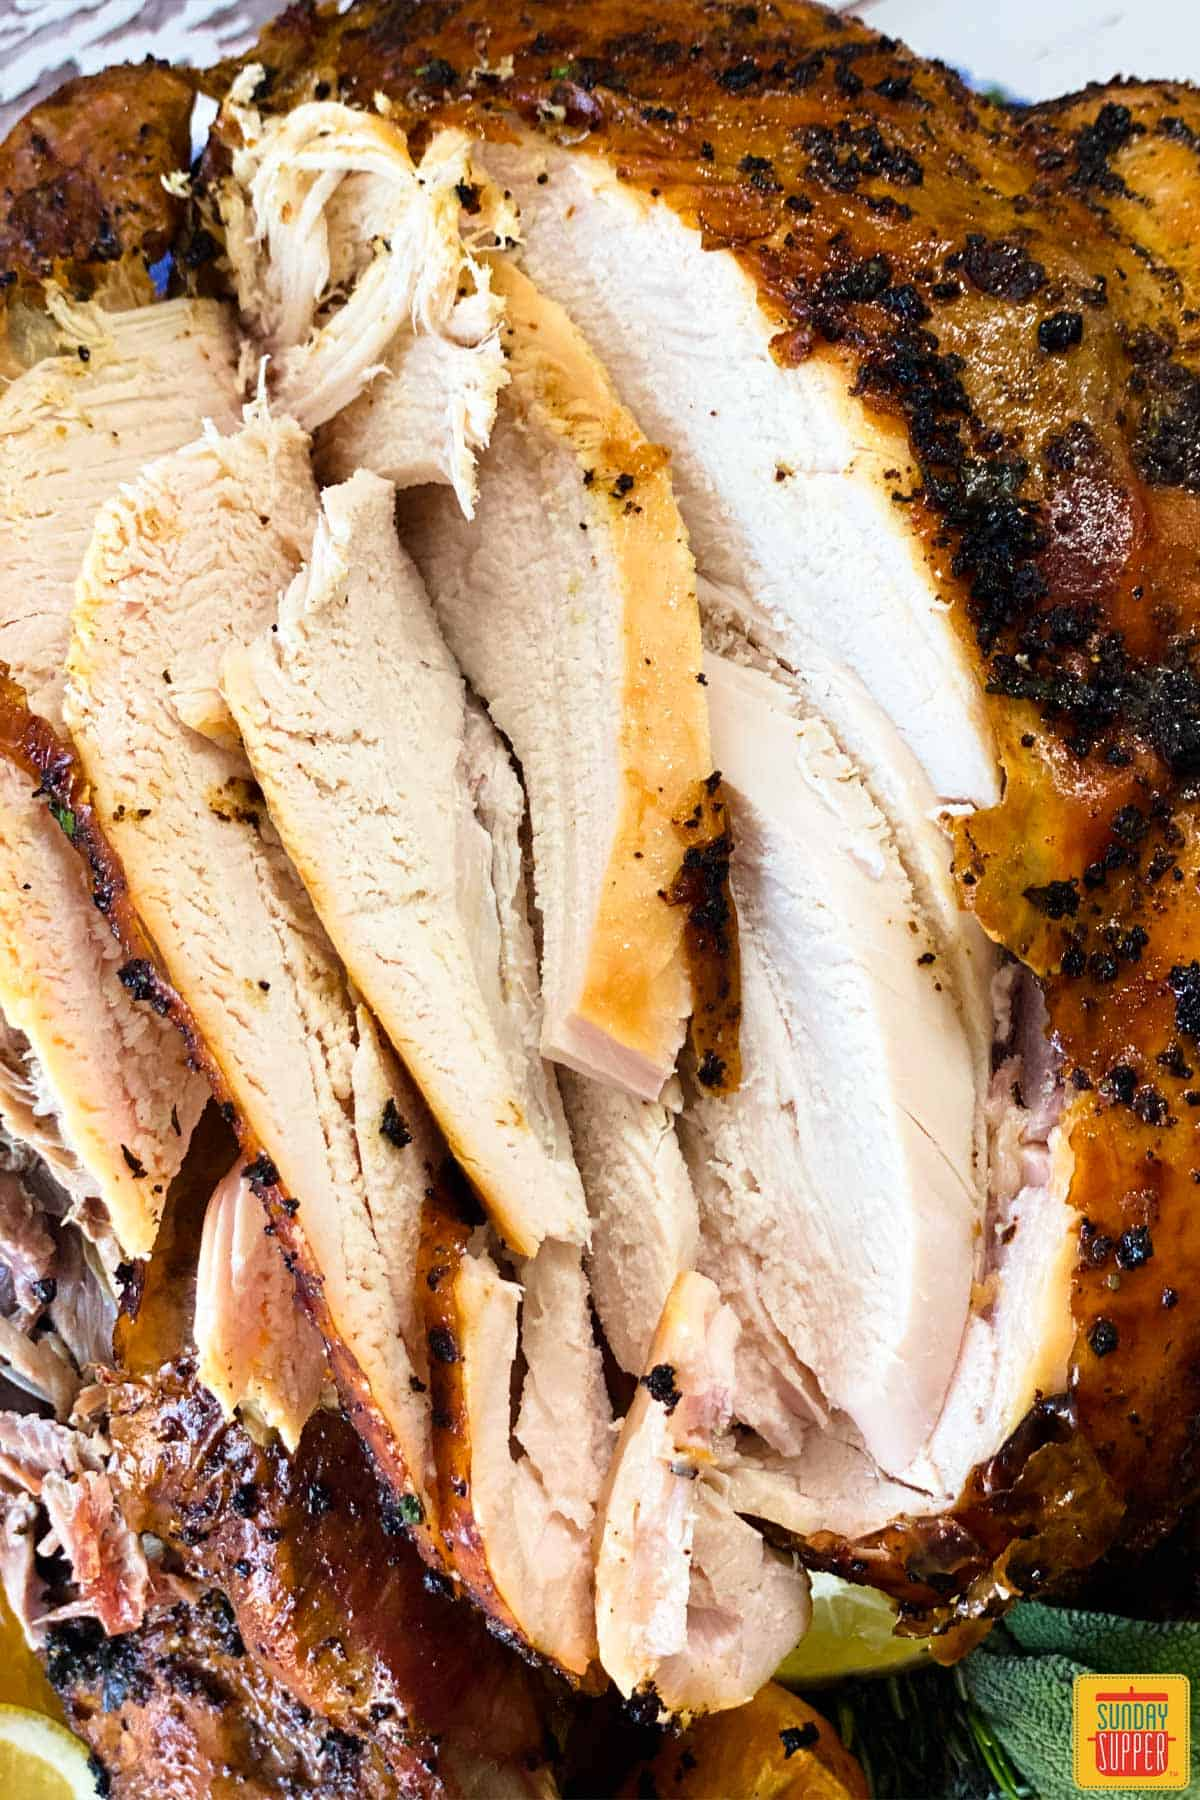 Slices of grilled turkey up close